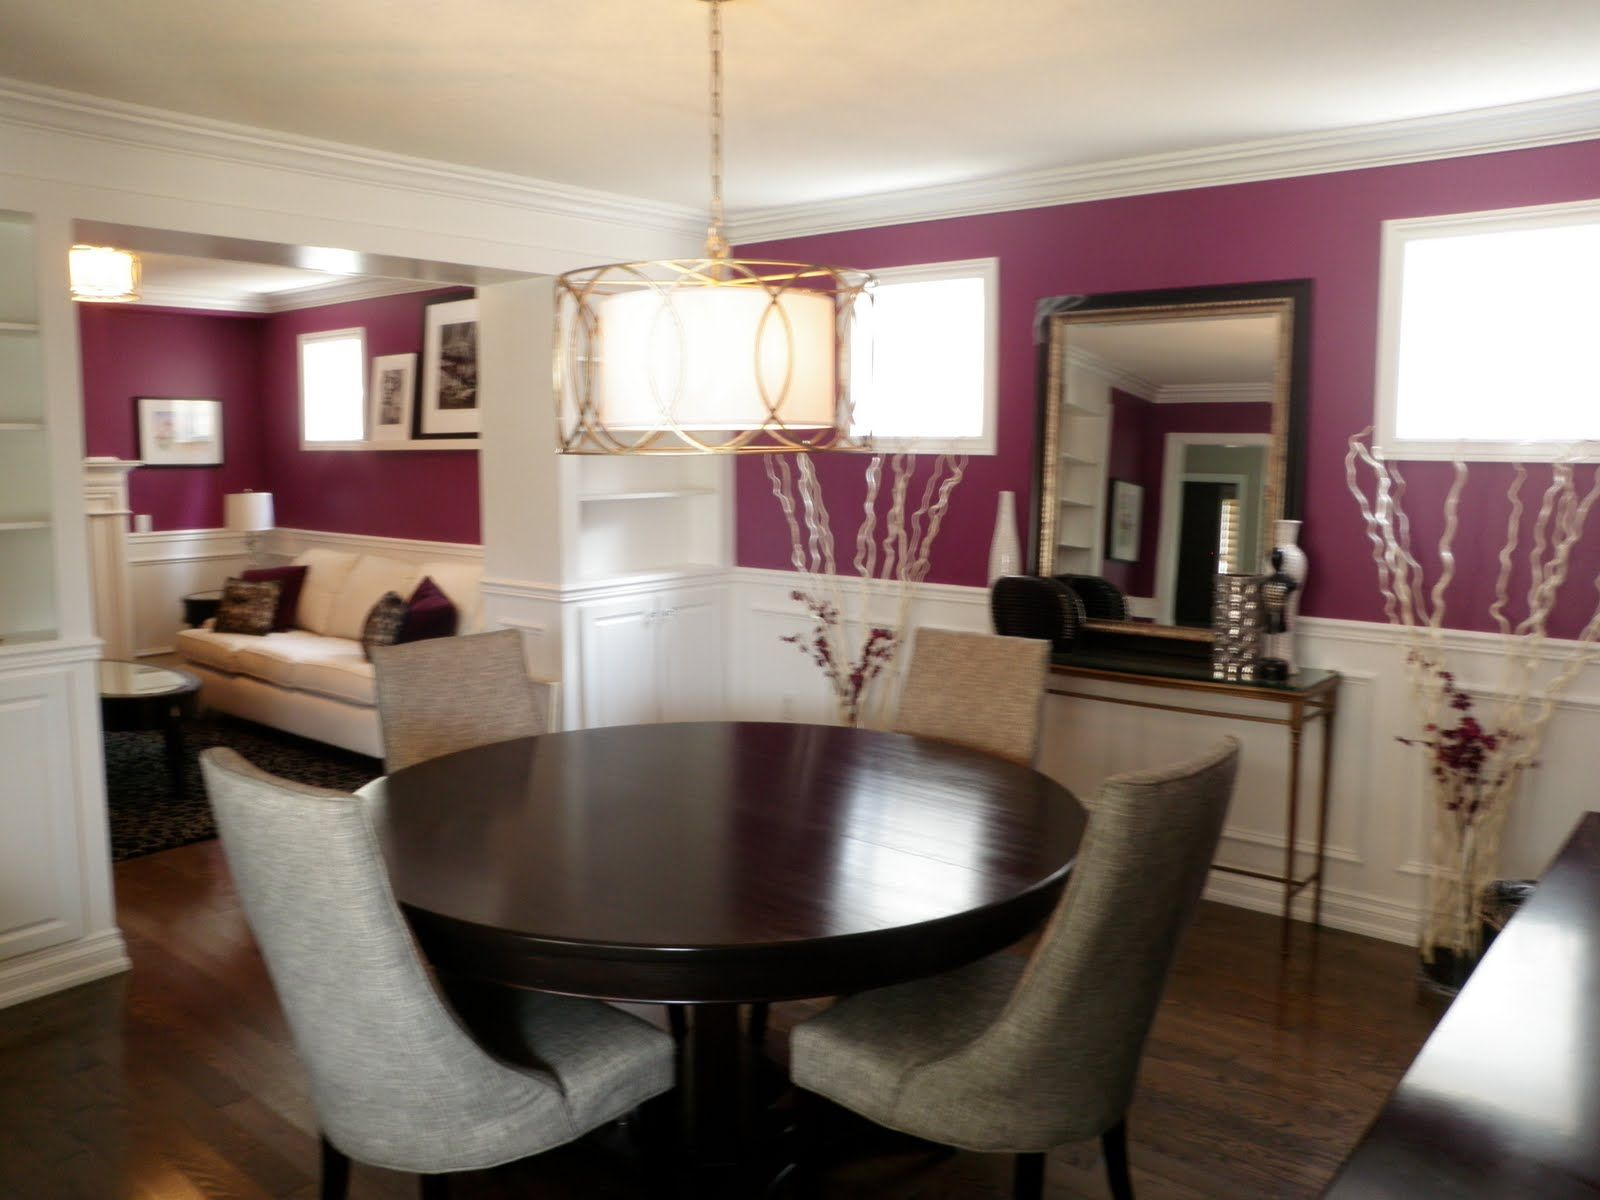 light medium plum accent wall color dining room. Black Bedroom Furniture Sets. Home Design Ideas